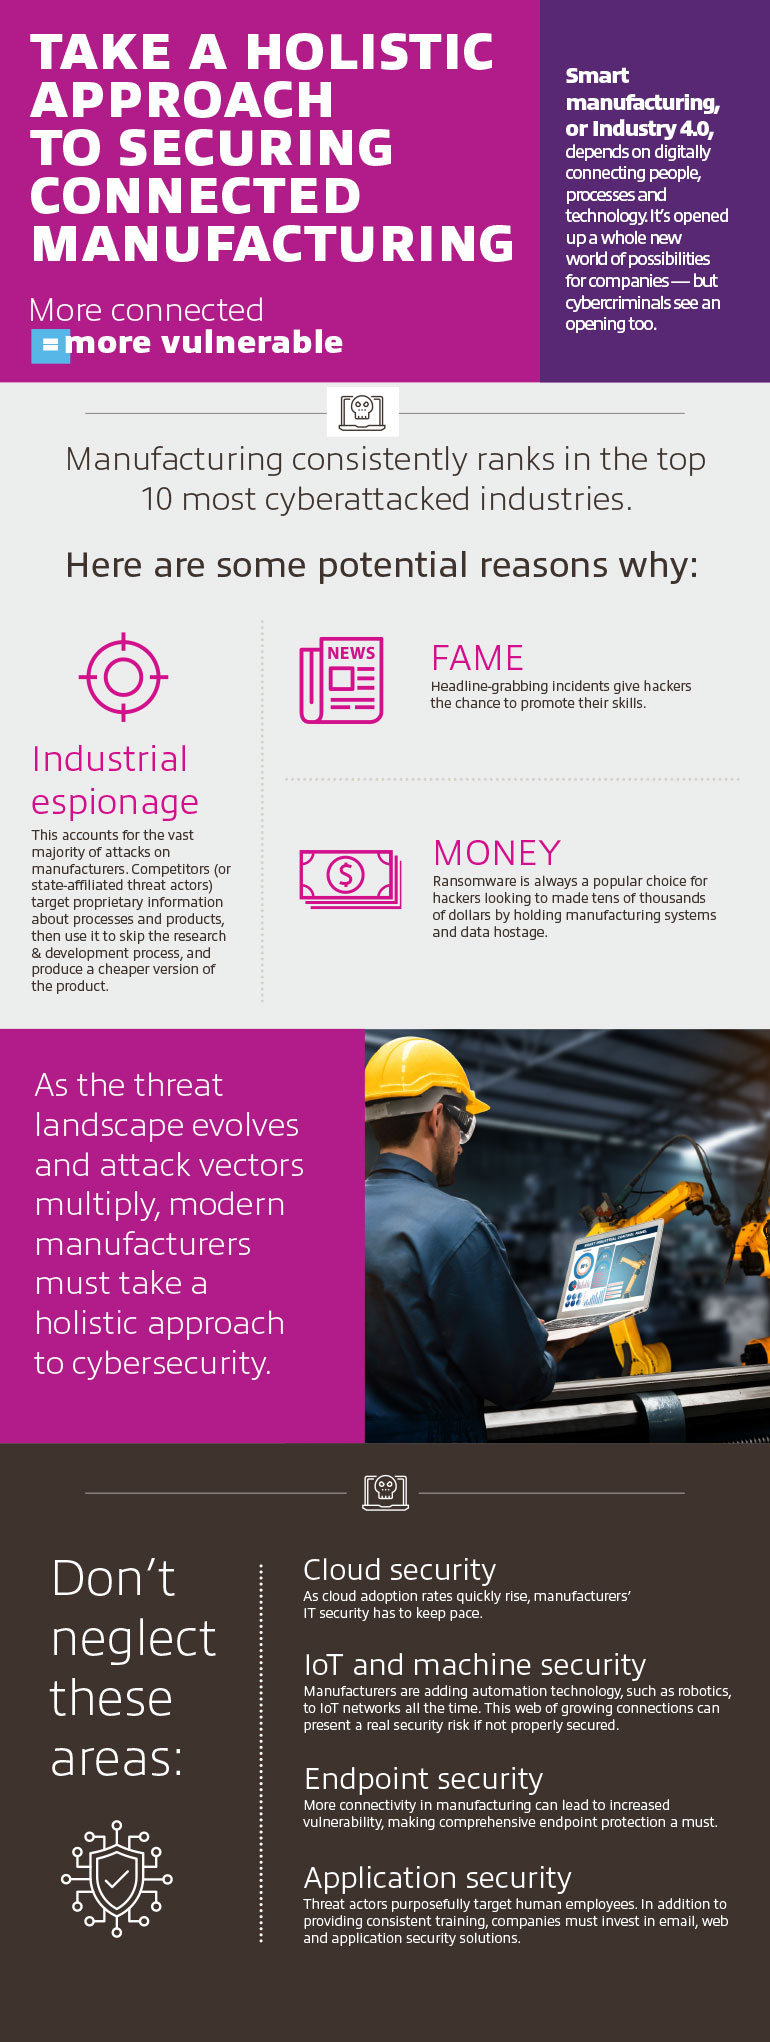 Holistic Approach to Securing Manufacturing infographic